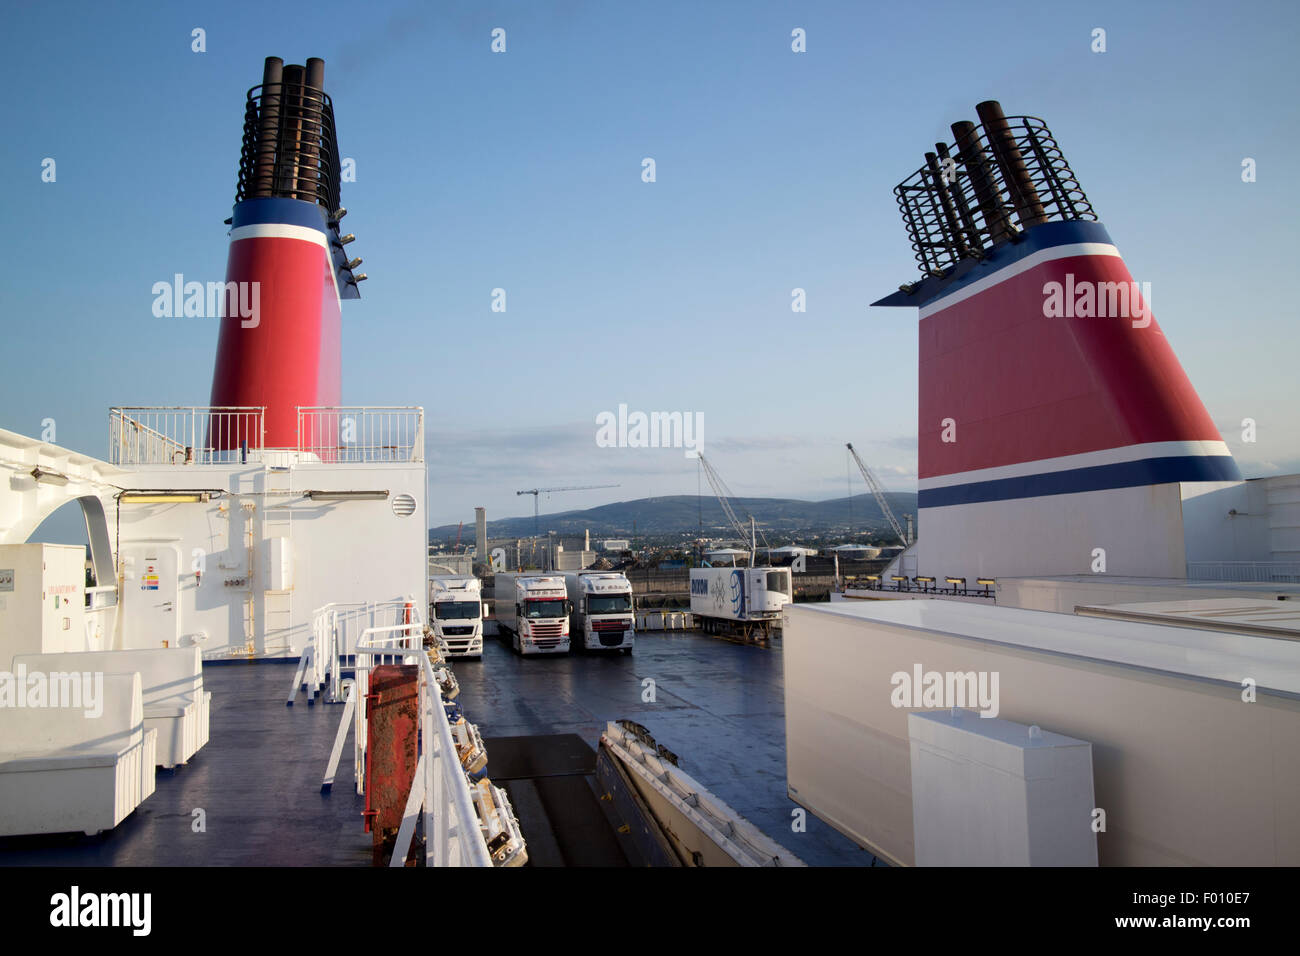 on board the stena adventurer passenger and freight superferry dublin port republic of Ireland - Stock Image